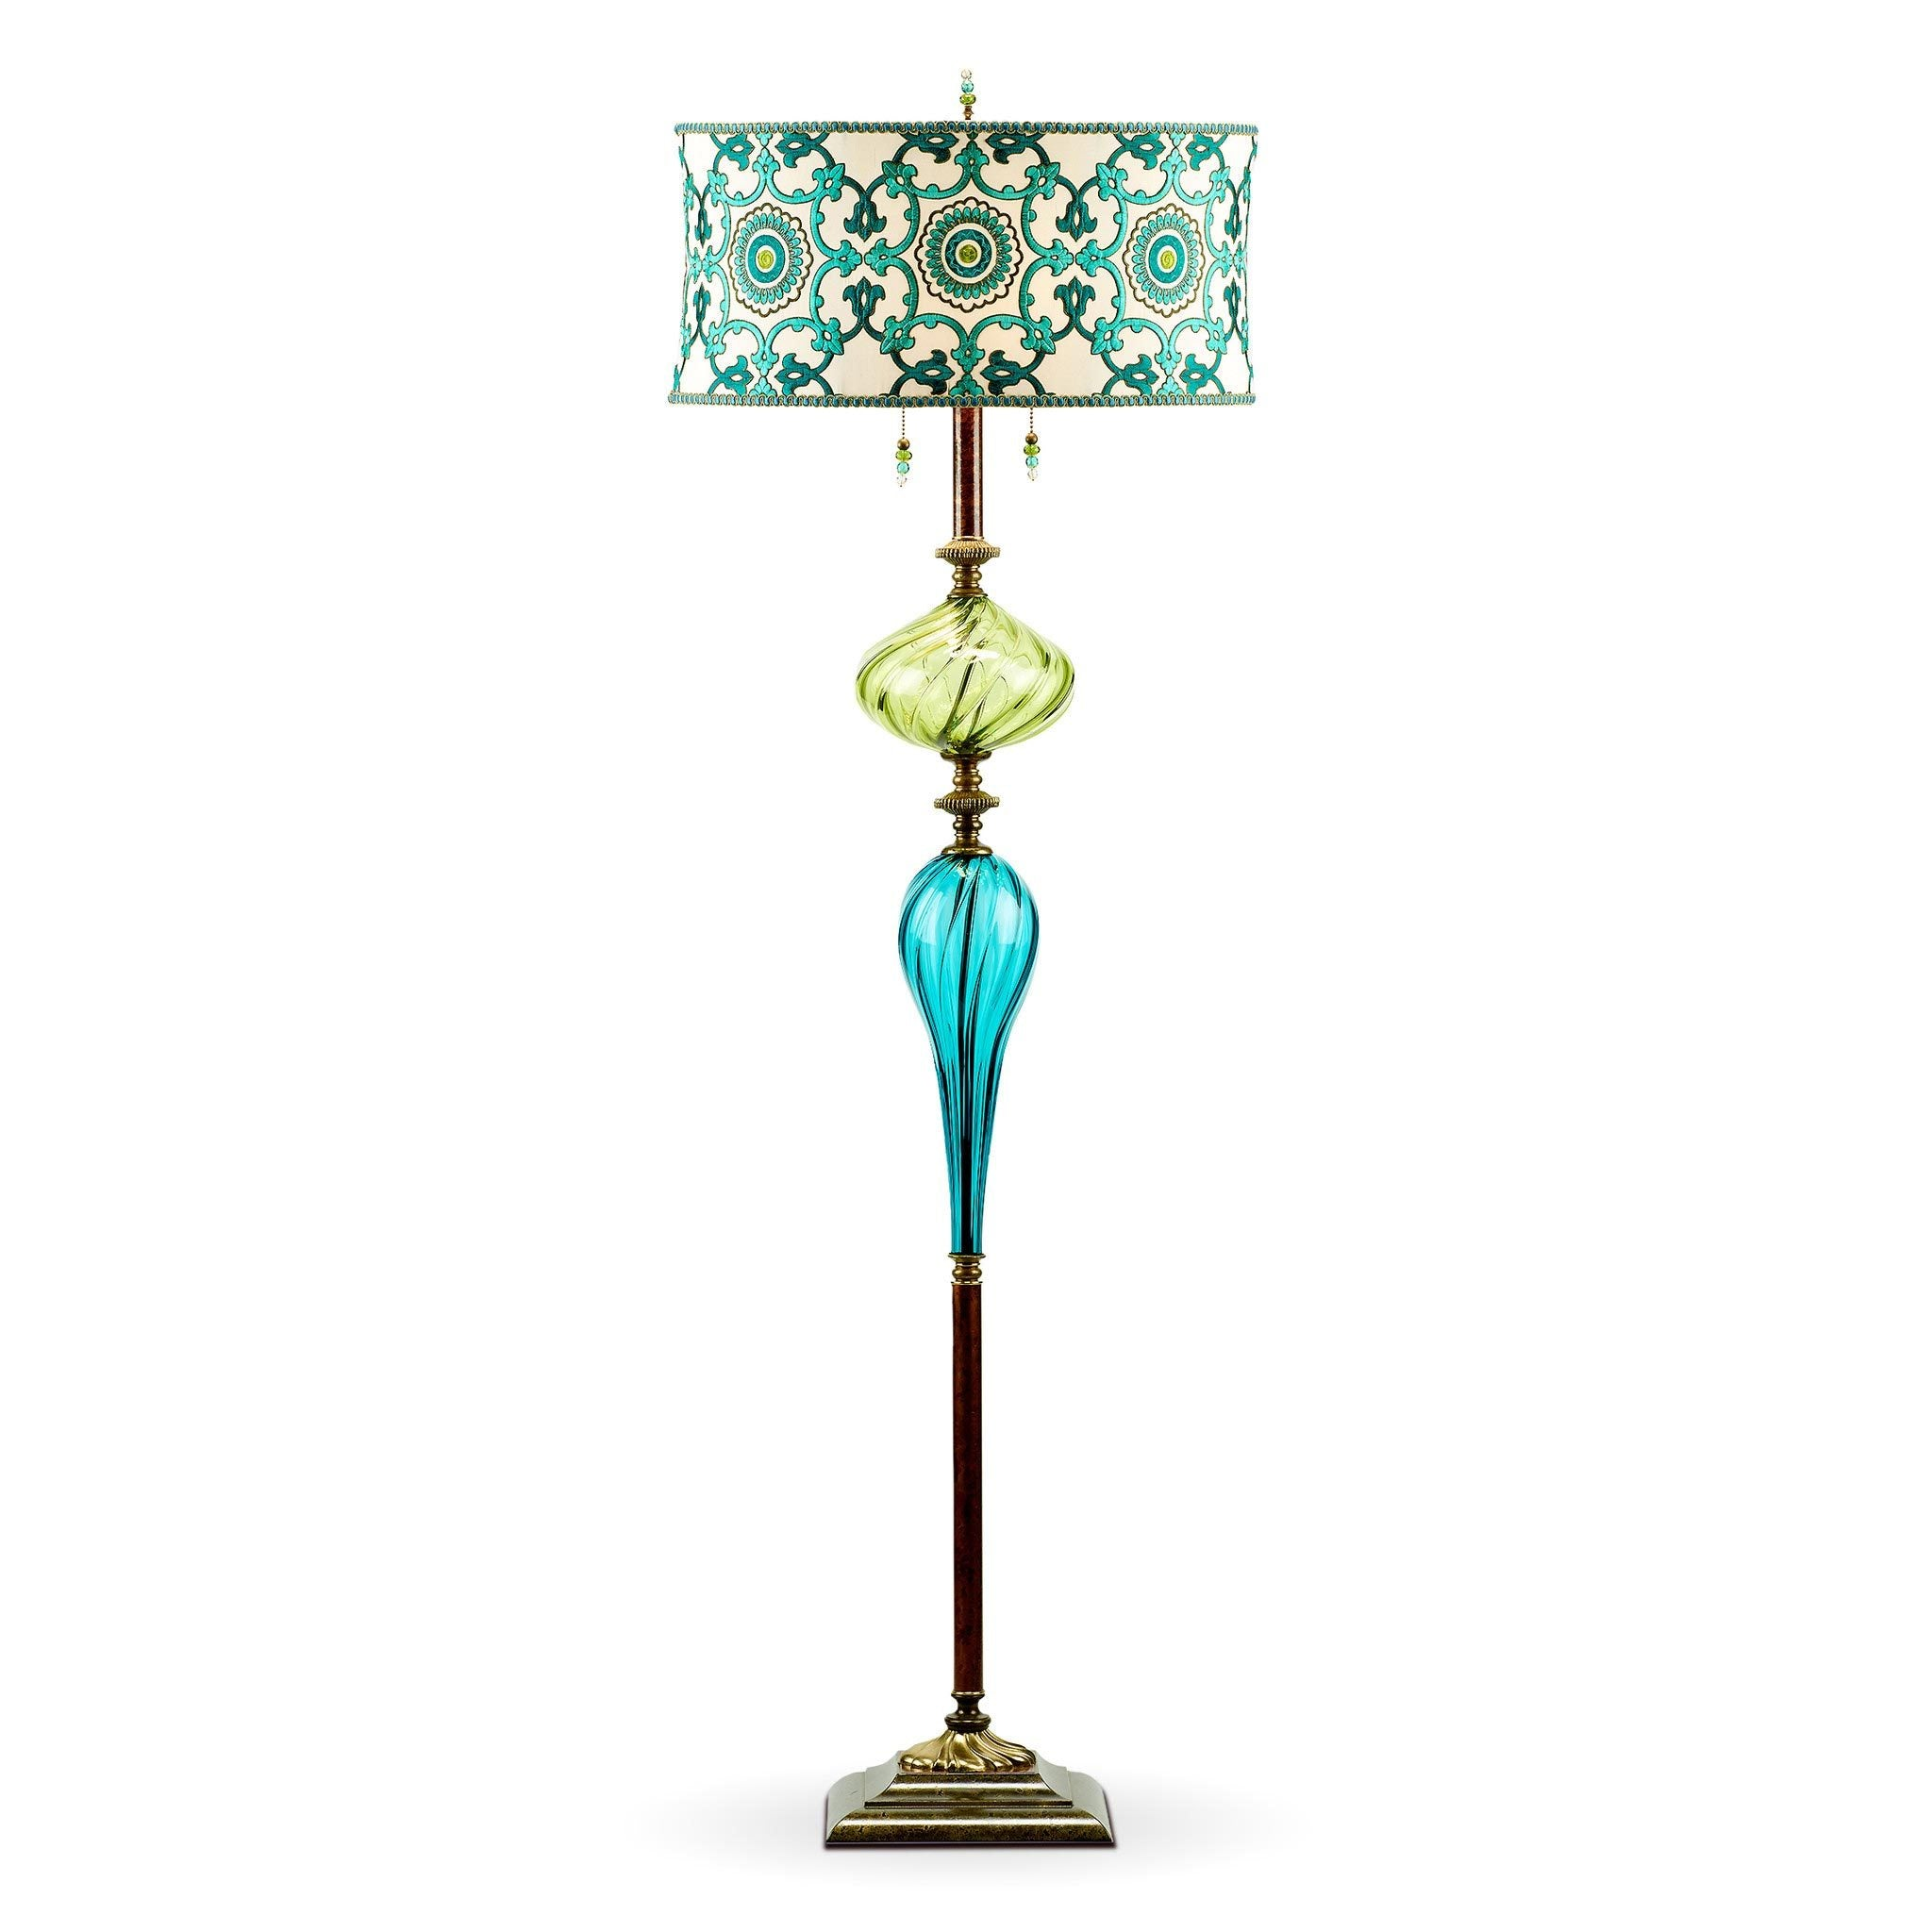 Kinzig design ed floor lamp f141ag177 colors turquoise lime green kinzig design ed floor lamp f141ag177 colors turquoise lime green blue and cream blown glass aloadofball Images